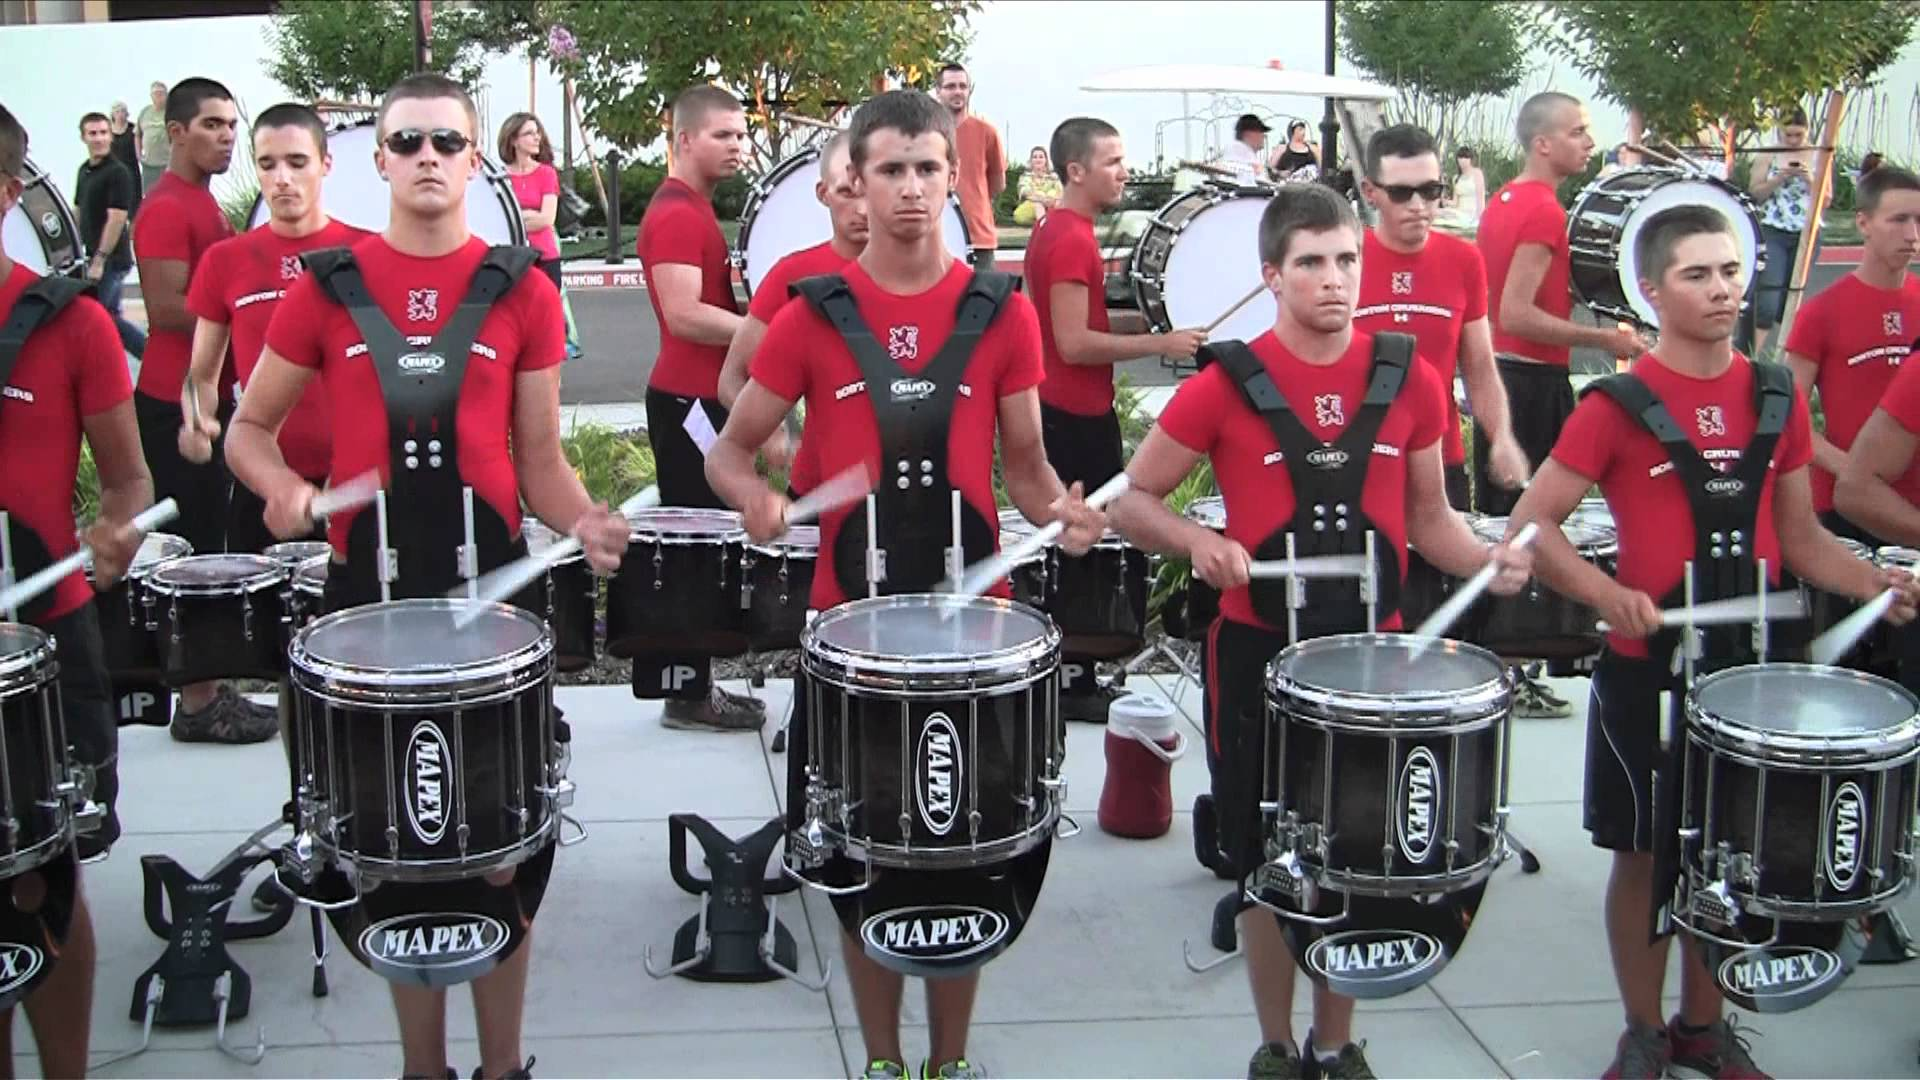 Boston Crusaders Drumline 2012 – Exercises